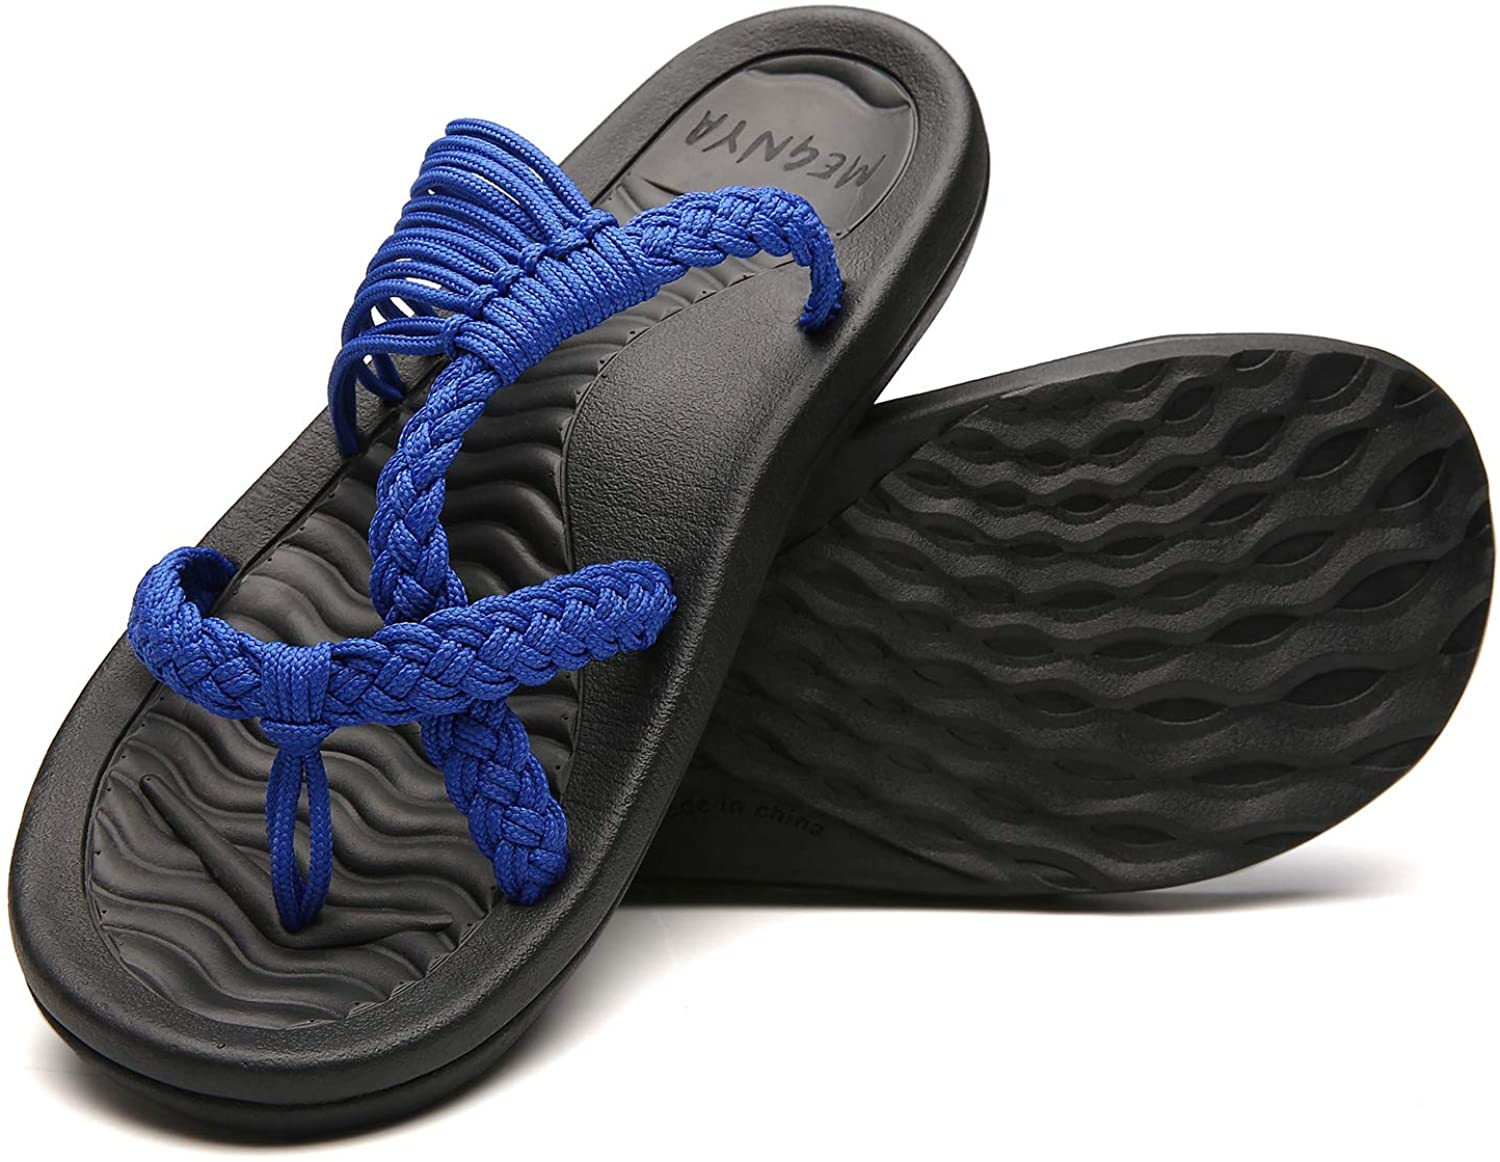 Women's flip Flops Sandals Arch Support,Comfortable Walking Sandals,Water Sandals Perfect for The Beach/Long Walks/Poolside